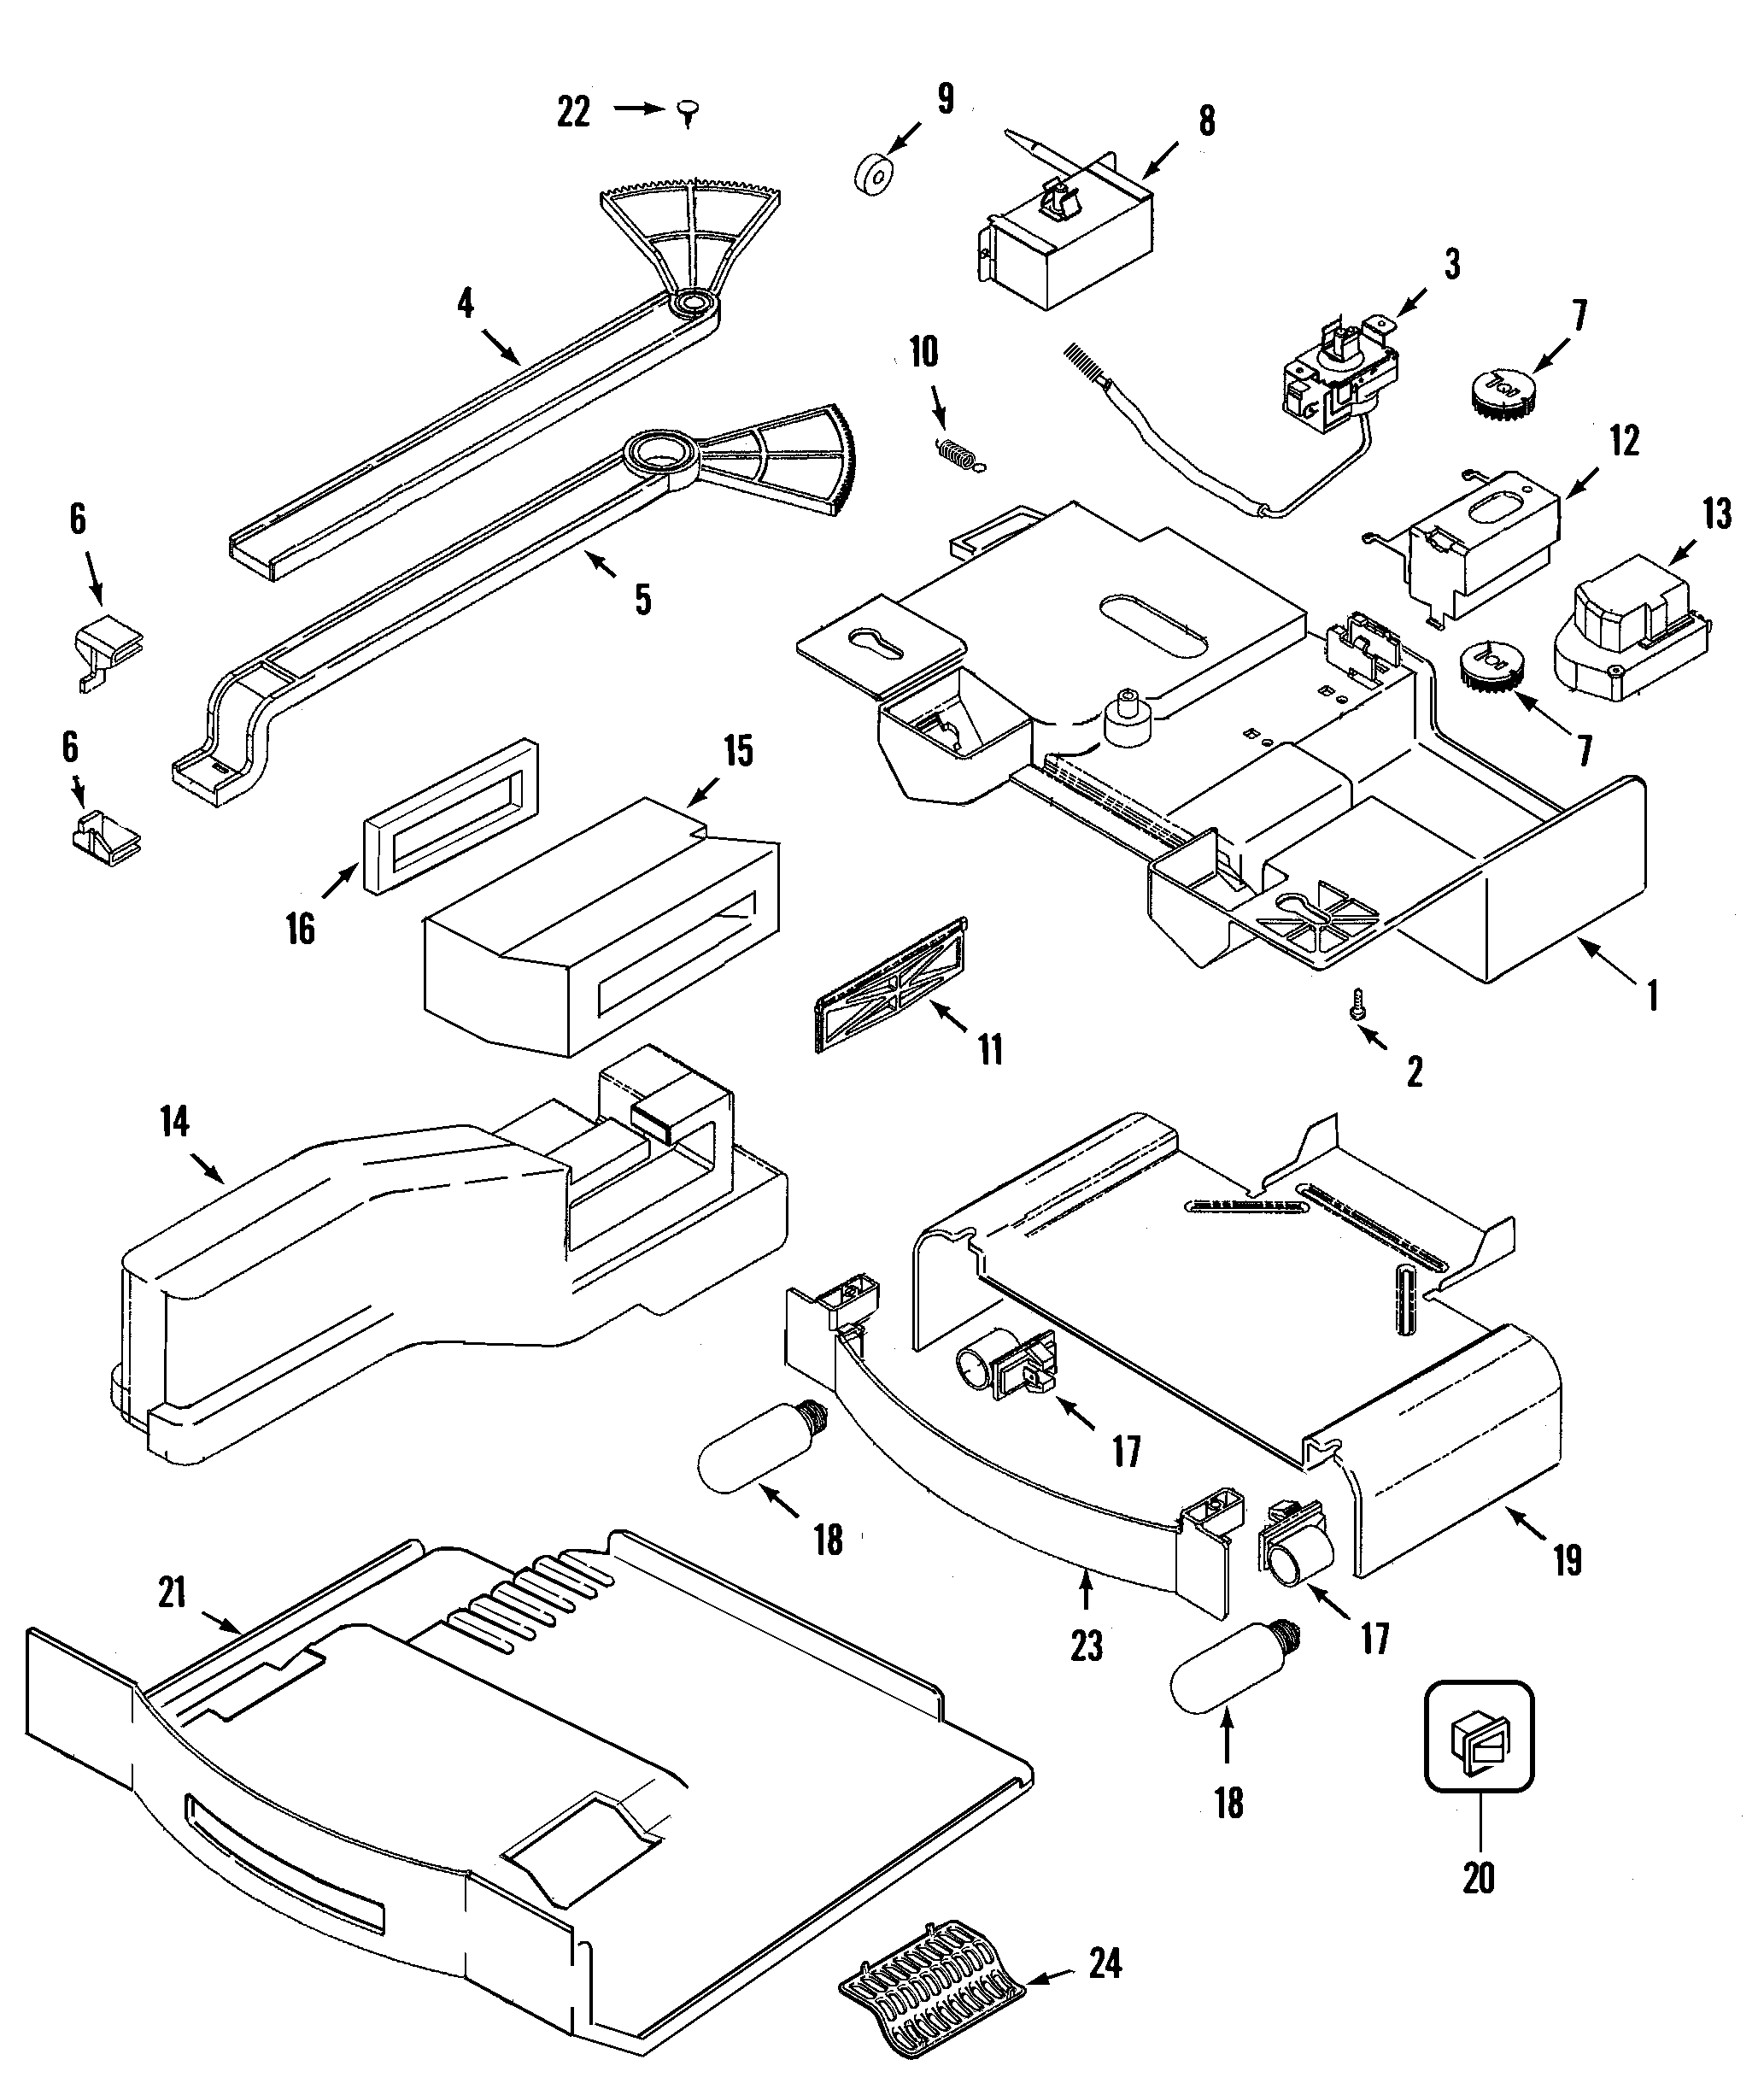 Sophisticated frigidaire ice maker parts diagram pictures best m0407325 00002 frigidaire ice maker parts diagr y ice machine wiring diagram 4k